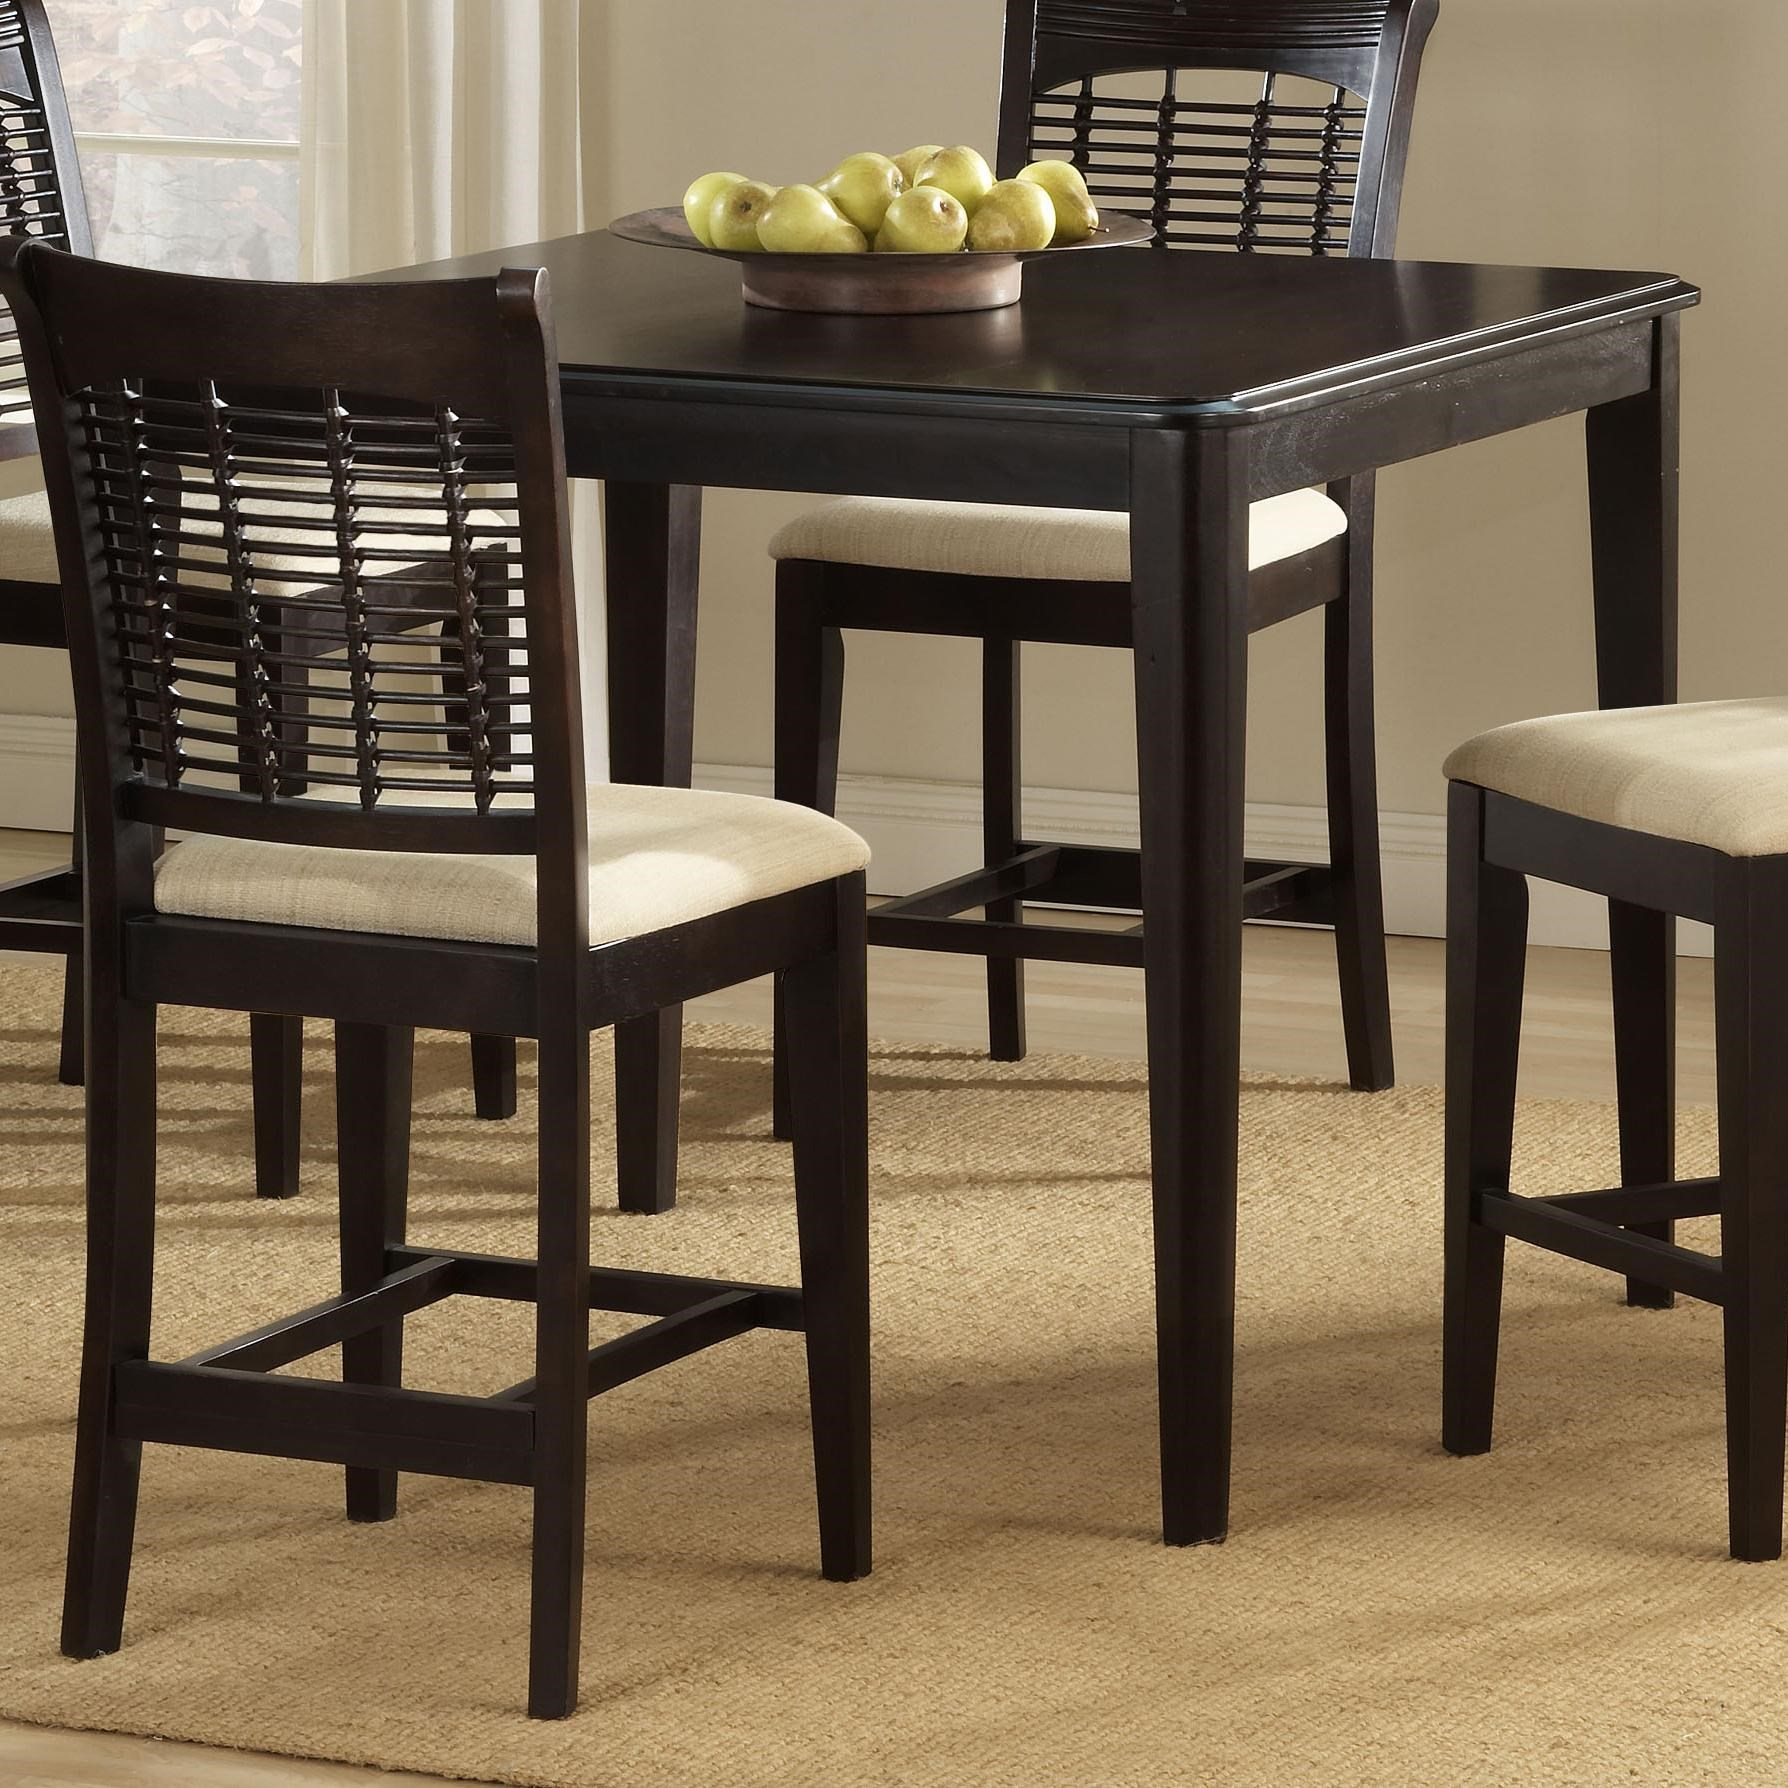 Hillsdale Bayberry and Glenmary Counter Height Gathering Table & Hillsdale Bayberry and Glenmary Counter Height Gathering Table ...